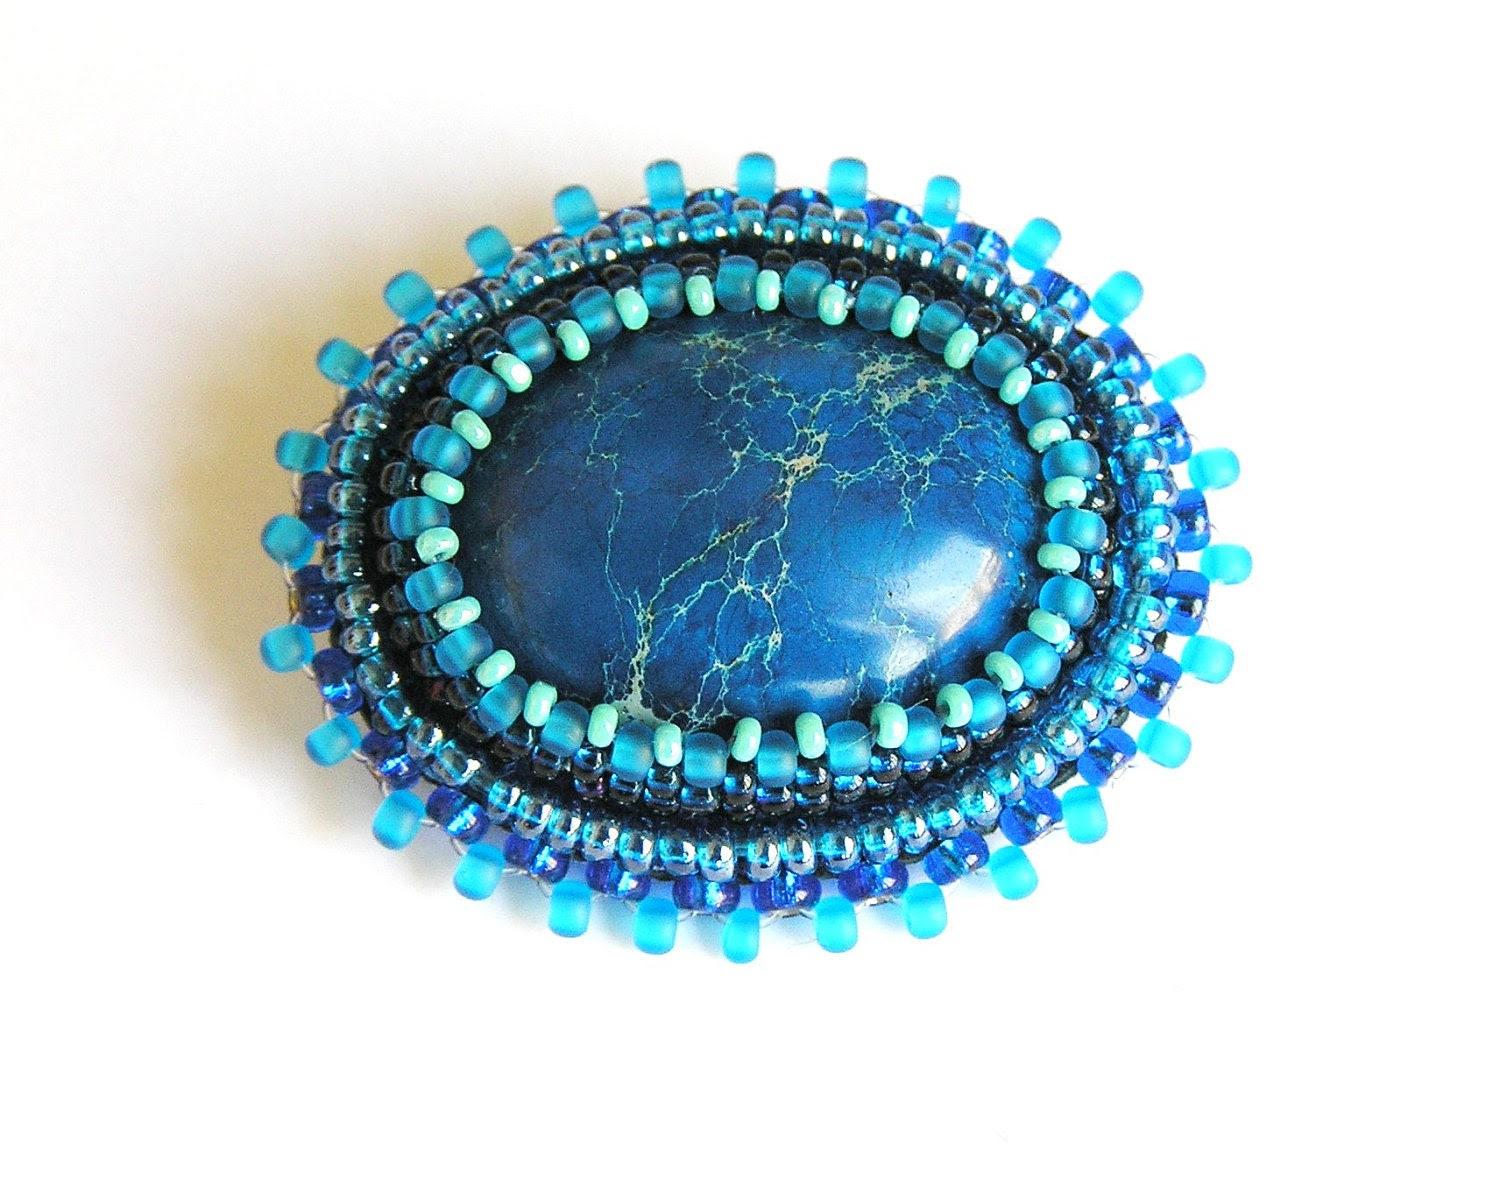 Sea Treasures-brooch blue jasper embroidery FREE SHIPPING - Reginao